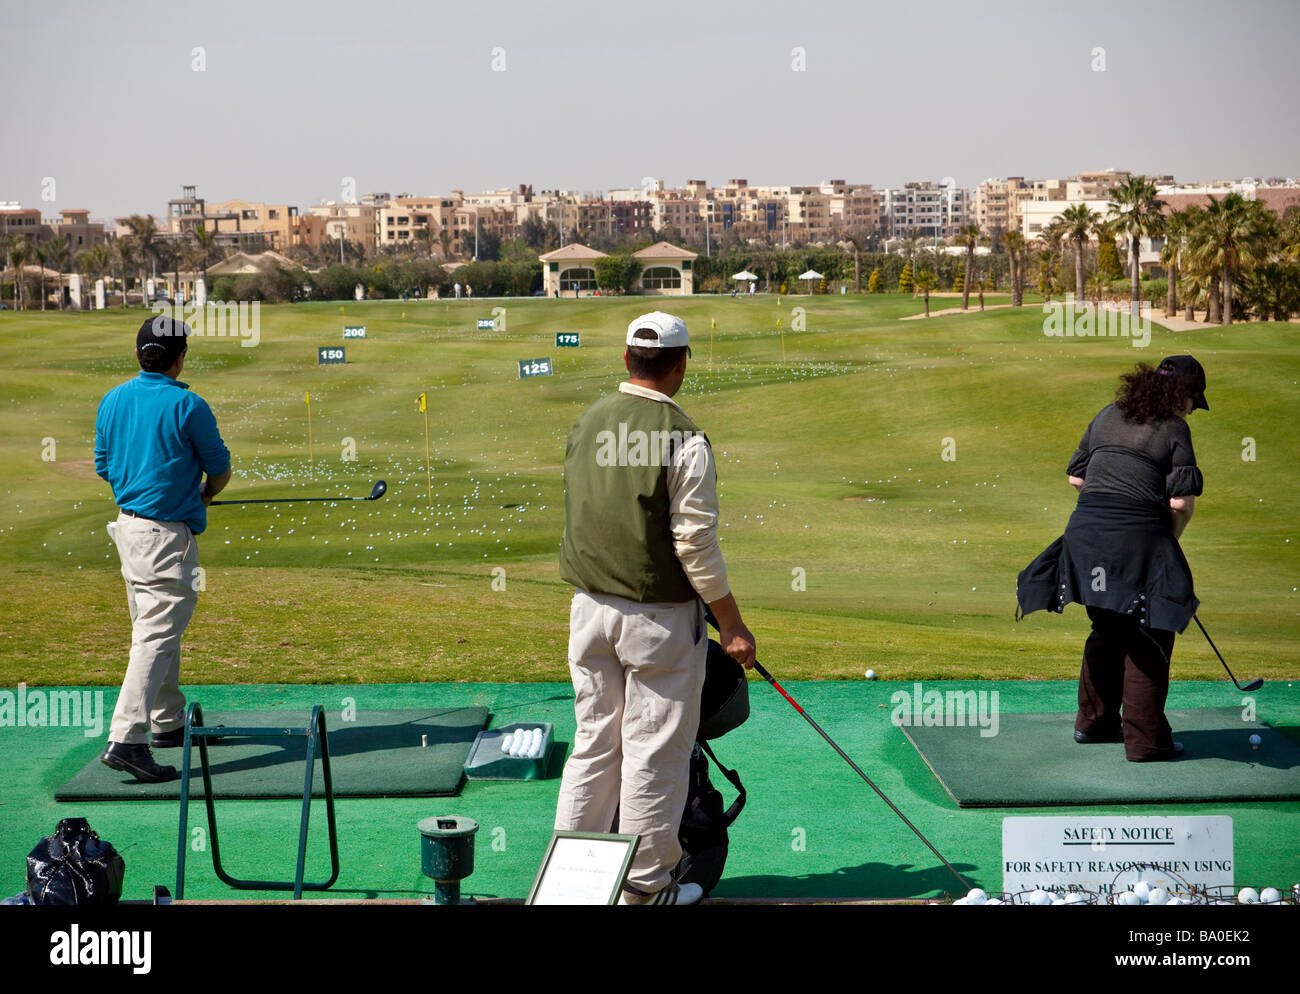 golfers on driving range, Katameya Heights golf course, New Cairo, Egypt - Stock Image